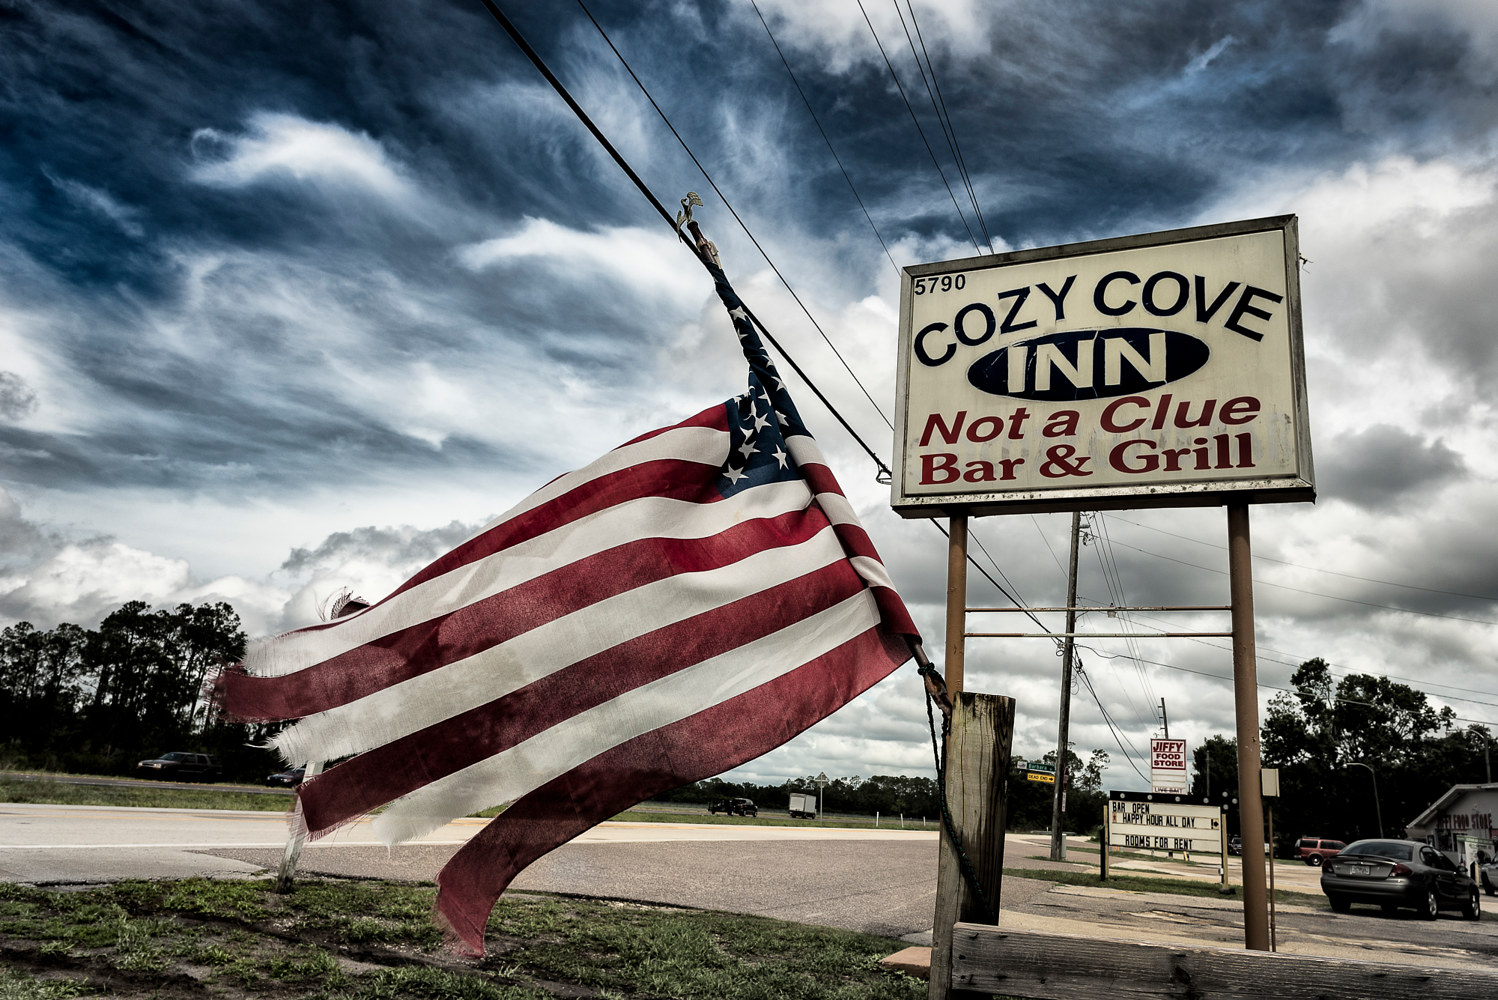 Cozy Cove Inn, US 192  (PL55_7401BWT) by Gary Jones